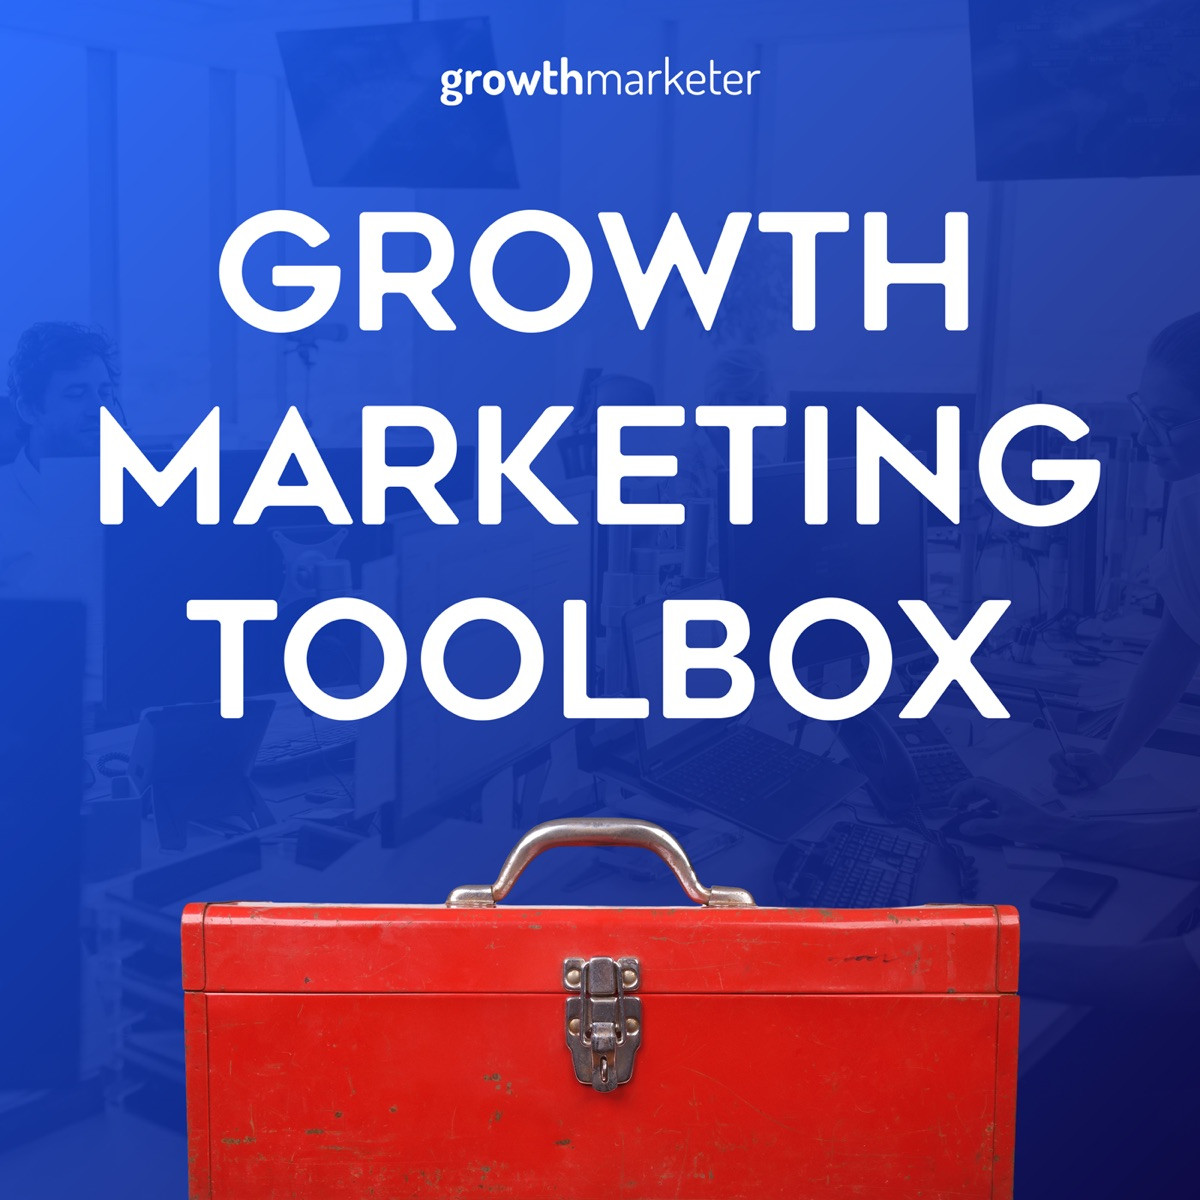 Growth Marketing Toolbox logo